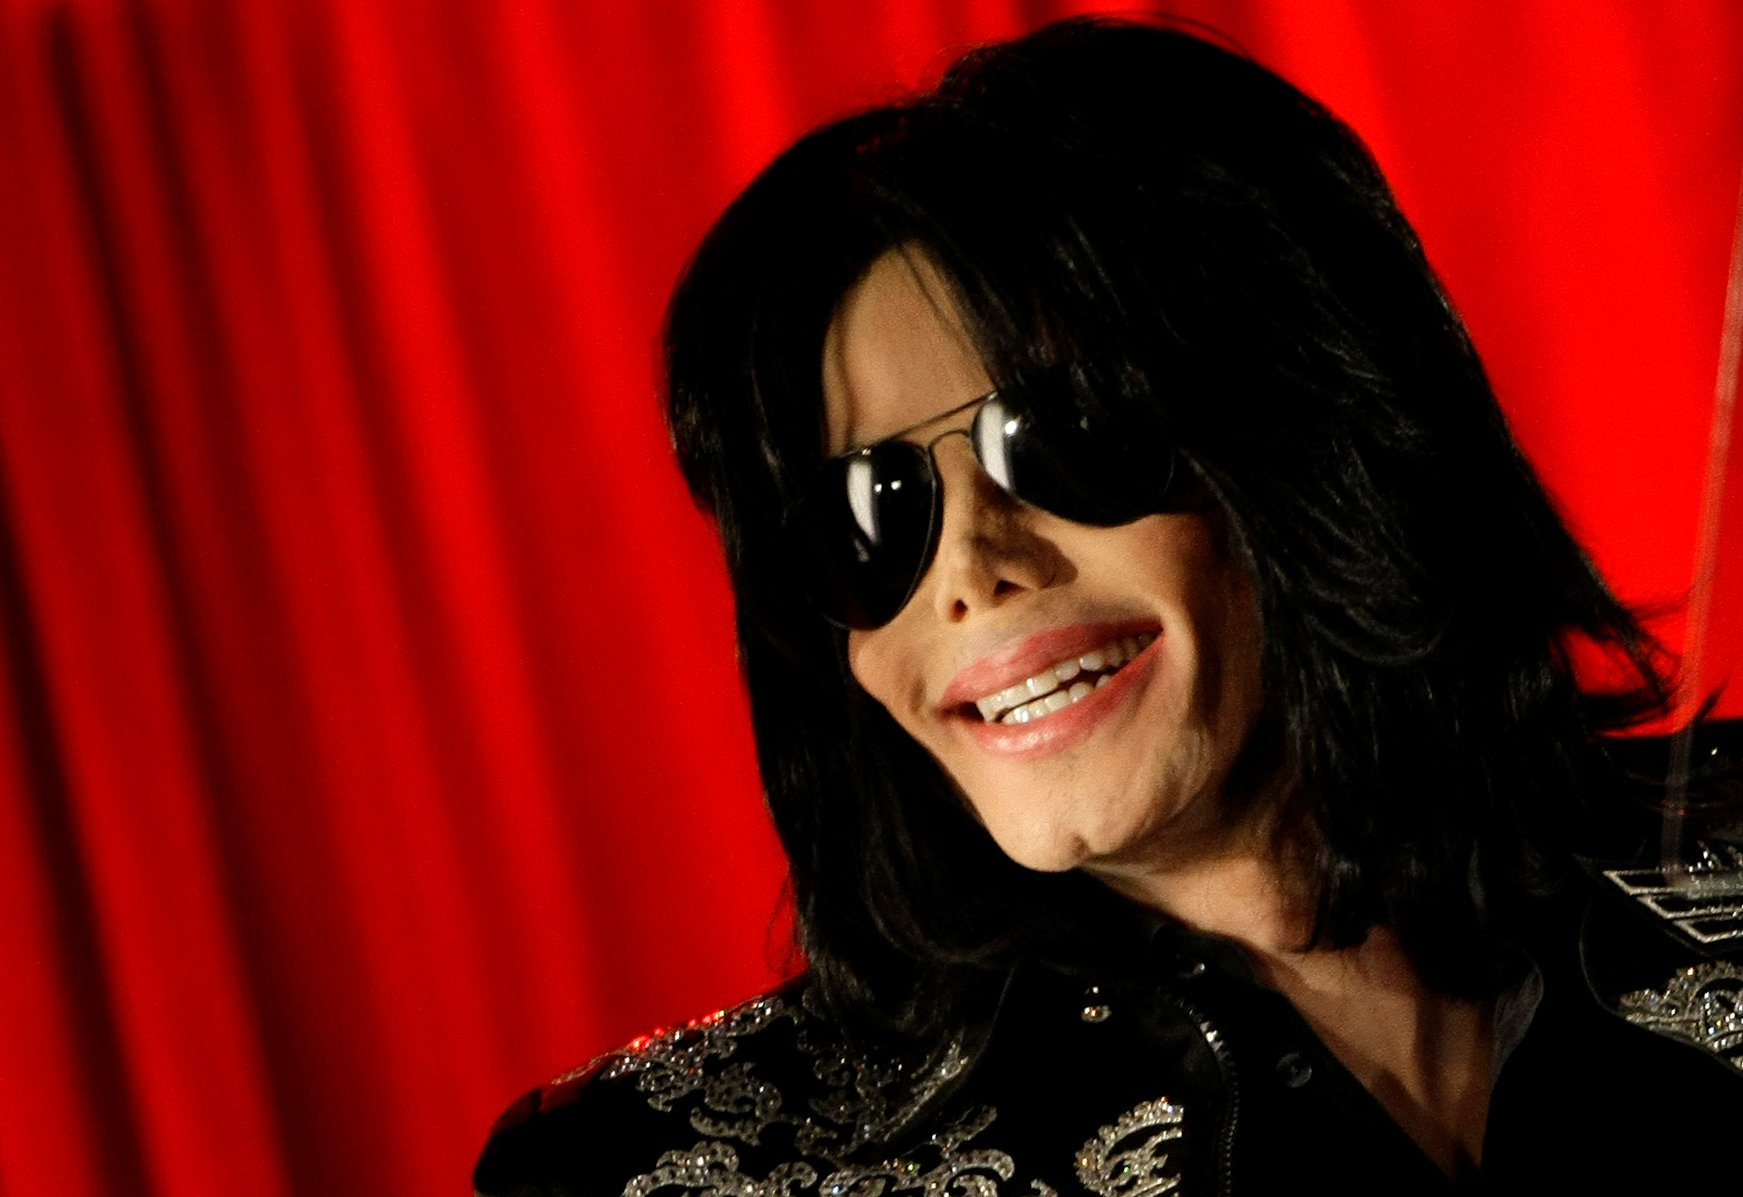 When is the Michael Jackson documentary on TV and how to watch it?